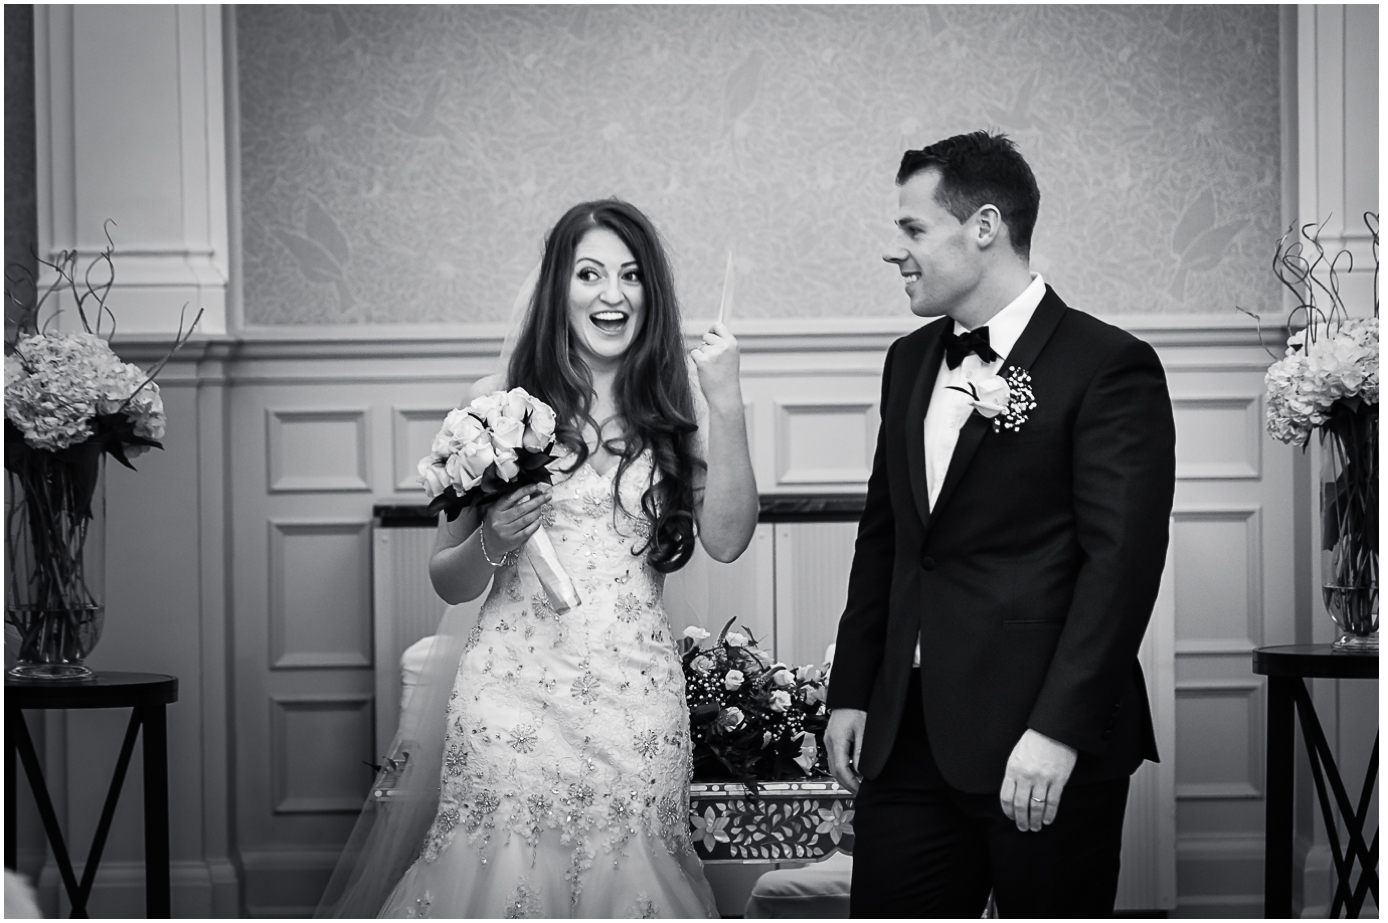 40 - Esmat and Angus - St. Ermin's Hotel London wedding photographer